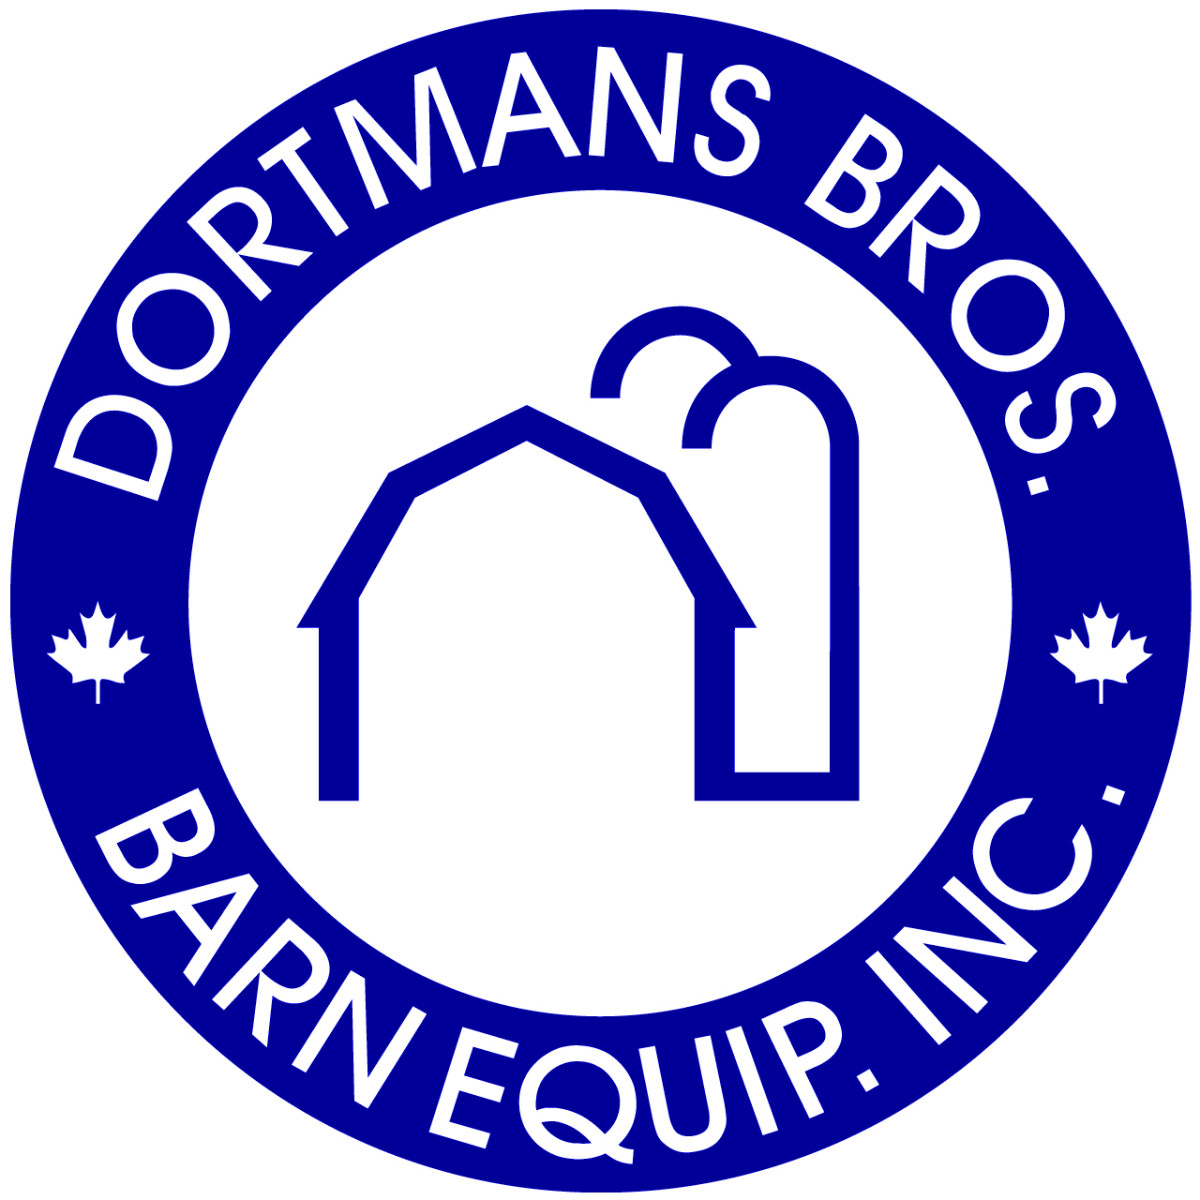 Dortman Bros. Barn Equipment